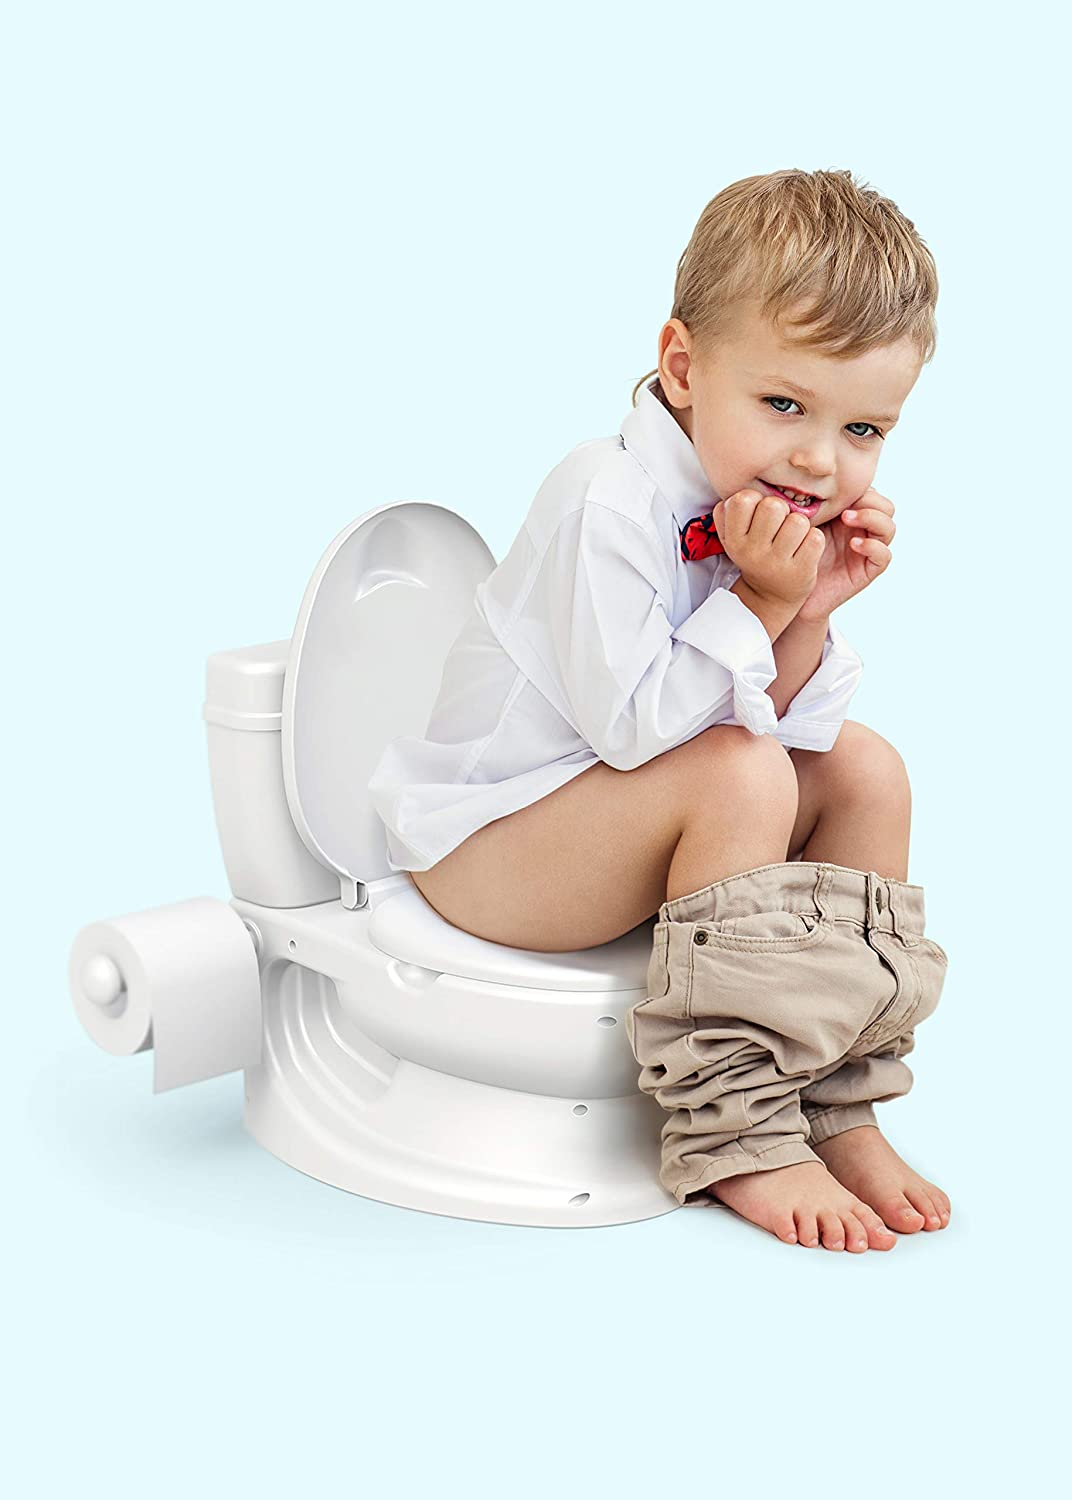 Training Potty My Potty My First Potty learning toilet for Toddlers and children girls or boys age 1+ with flushing sound closable lid splash protection for boys easy to remove and clean bowl wipes storage and personal roll paper holder like step 2 to summ